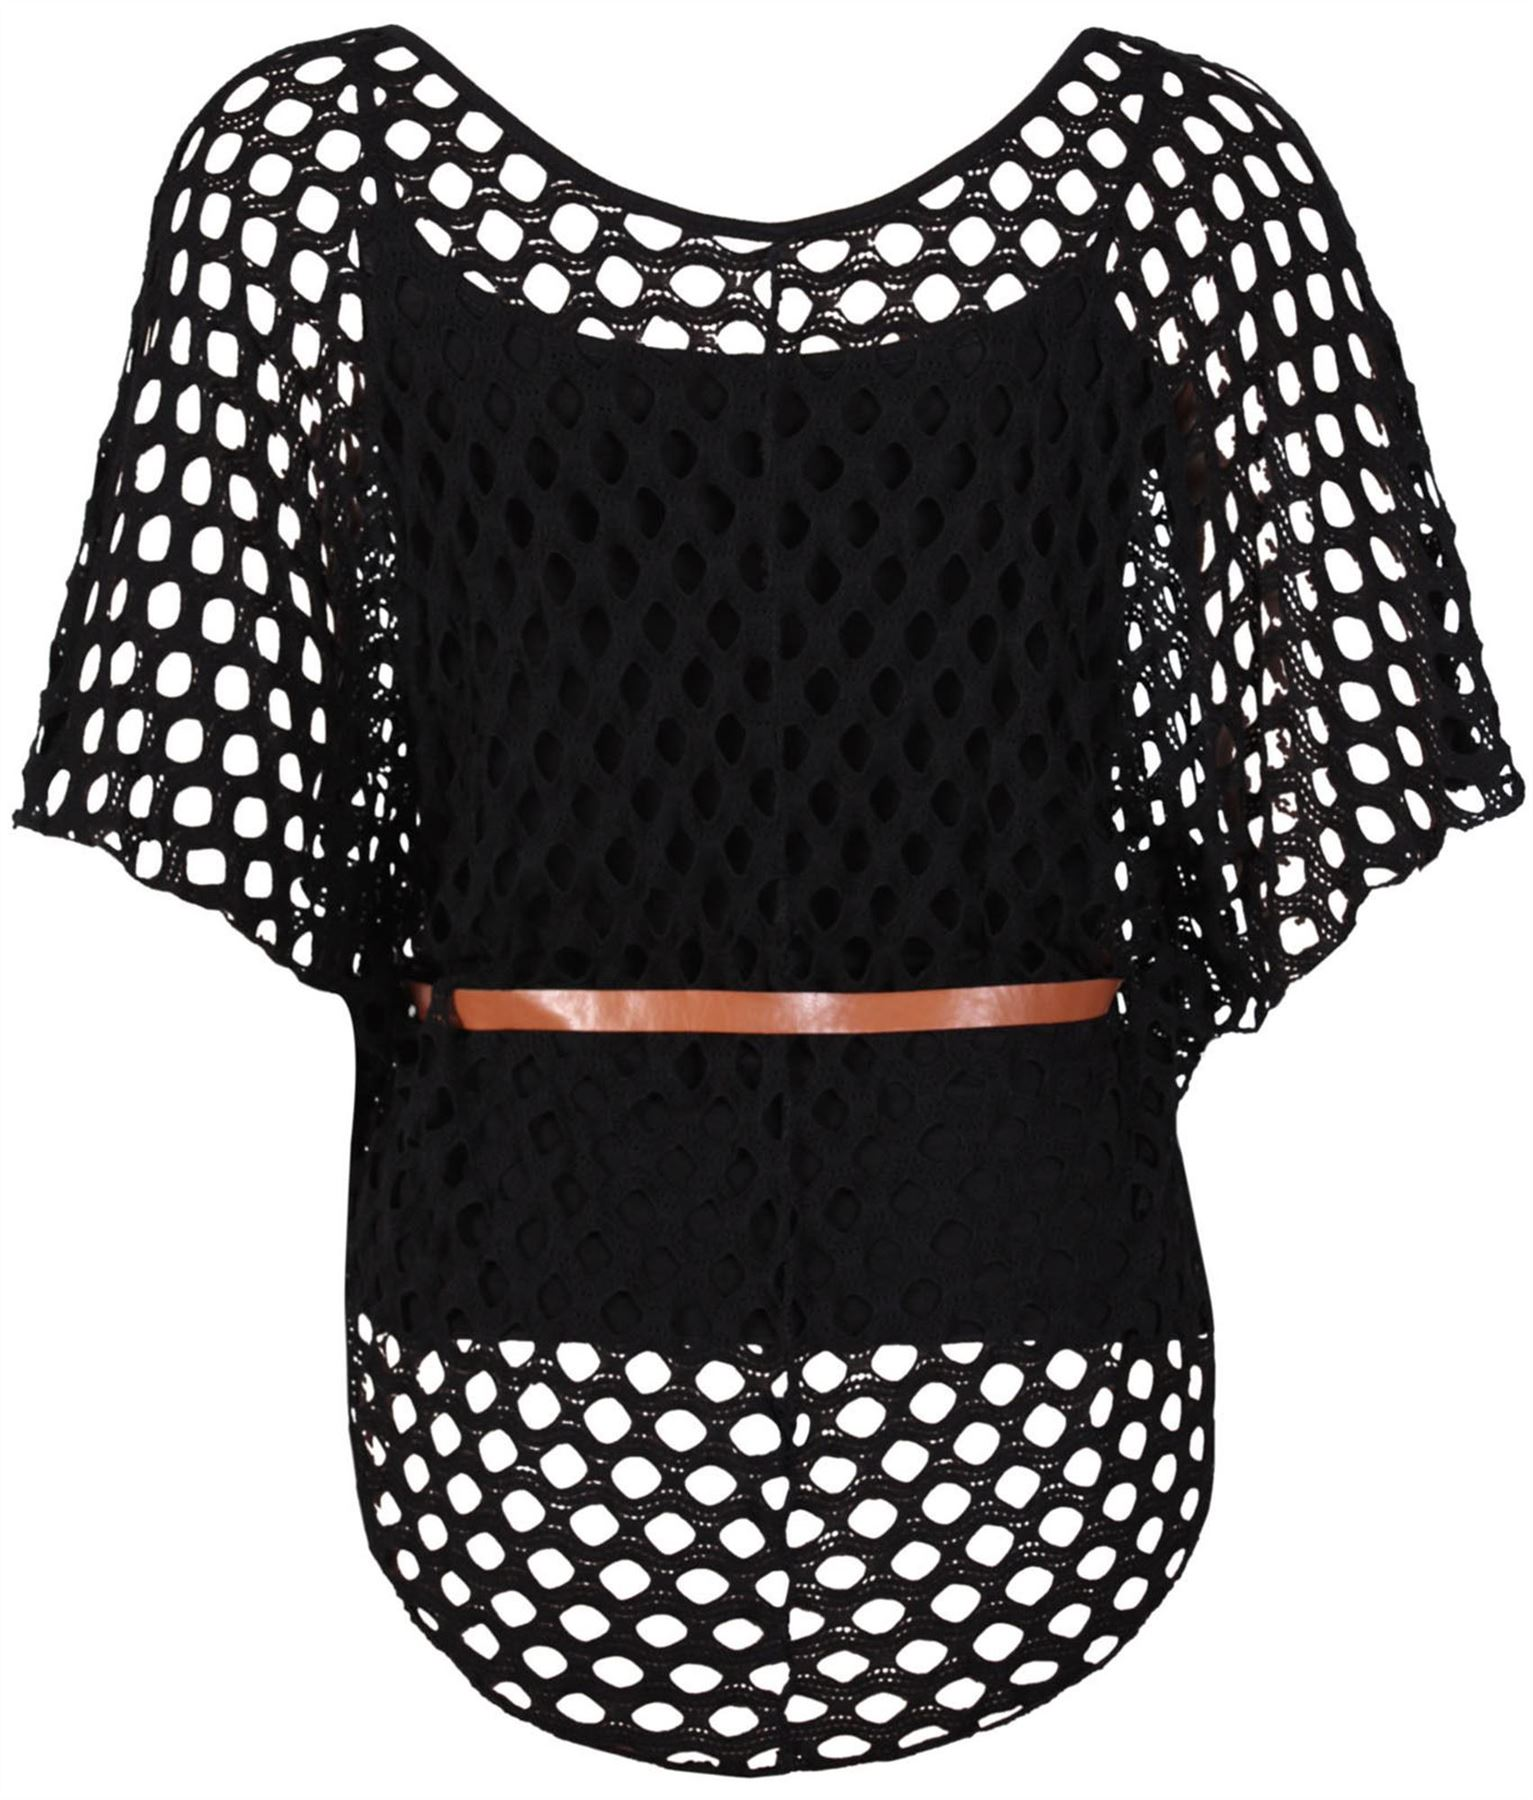 New Ladies Plus Size Tie Belted Crochet Batwing Tops Mesh Jumper